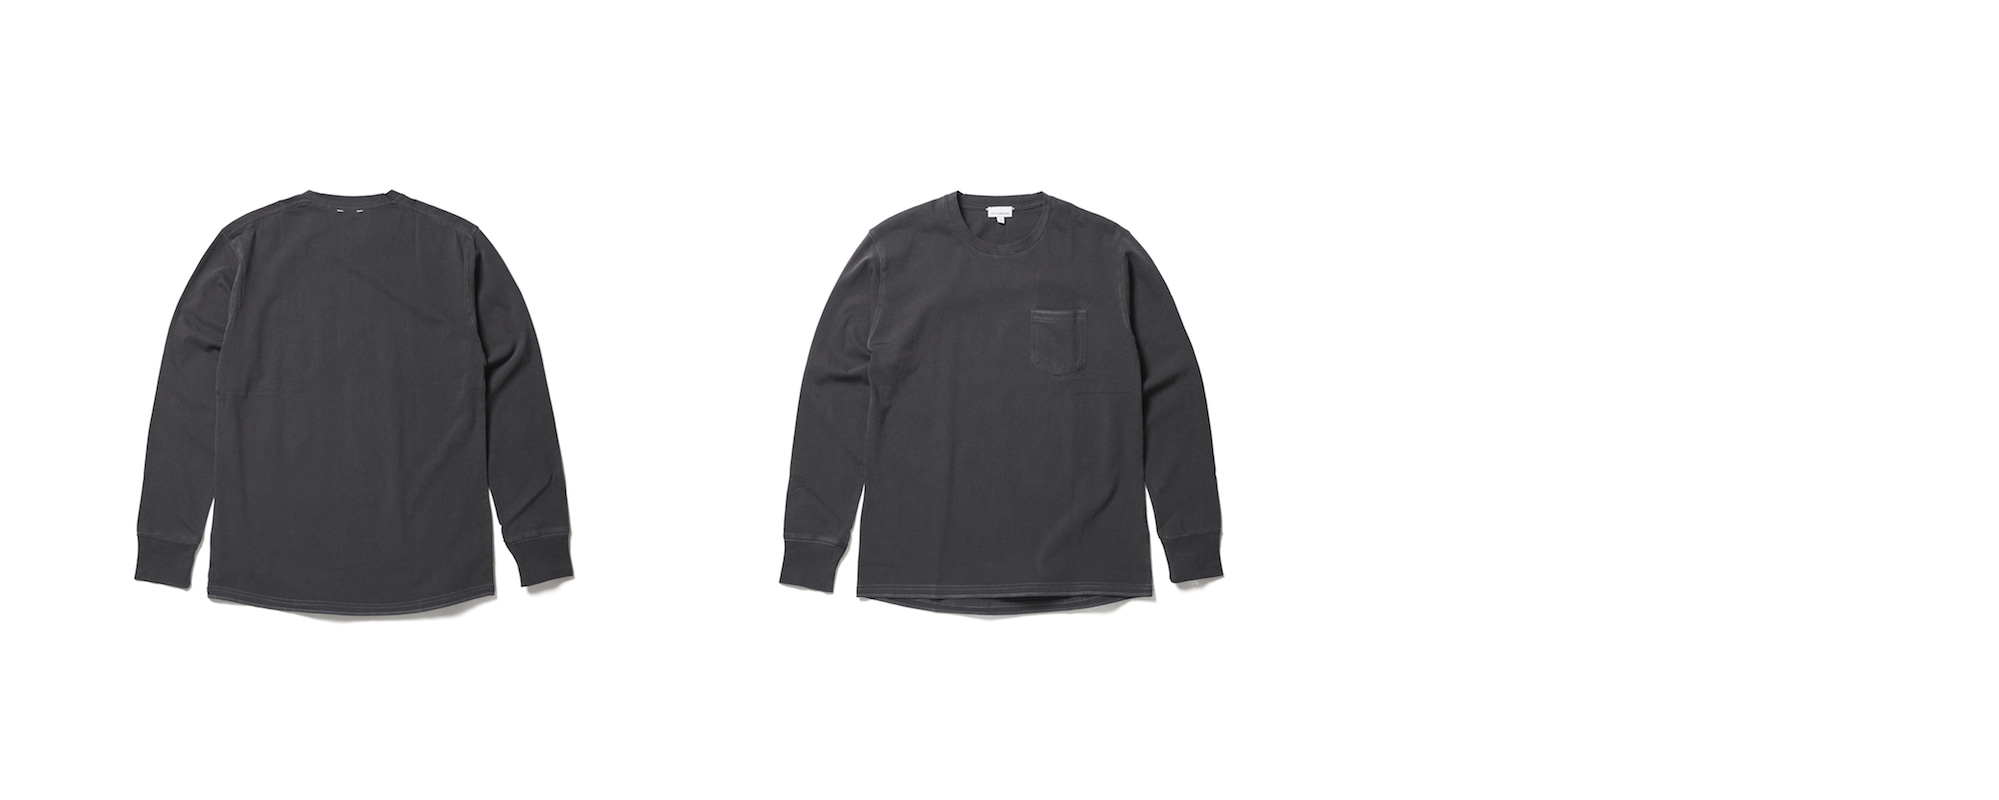 Light Pocket Long Sleeve Tee  Charcoal